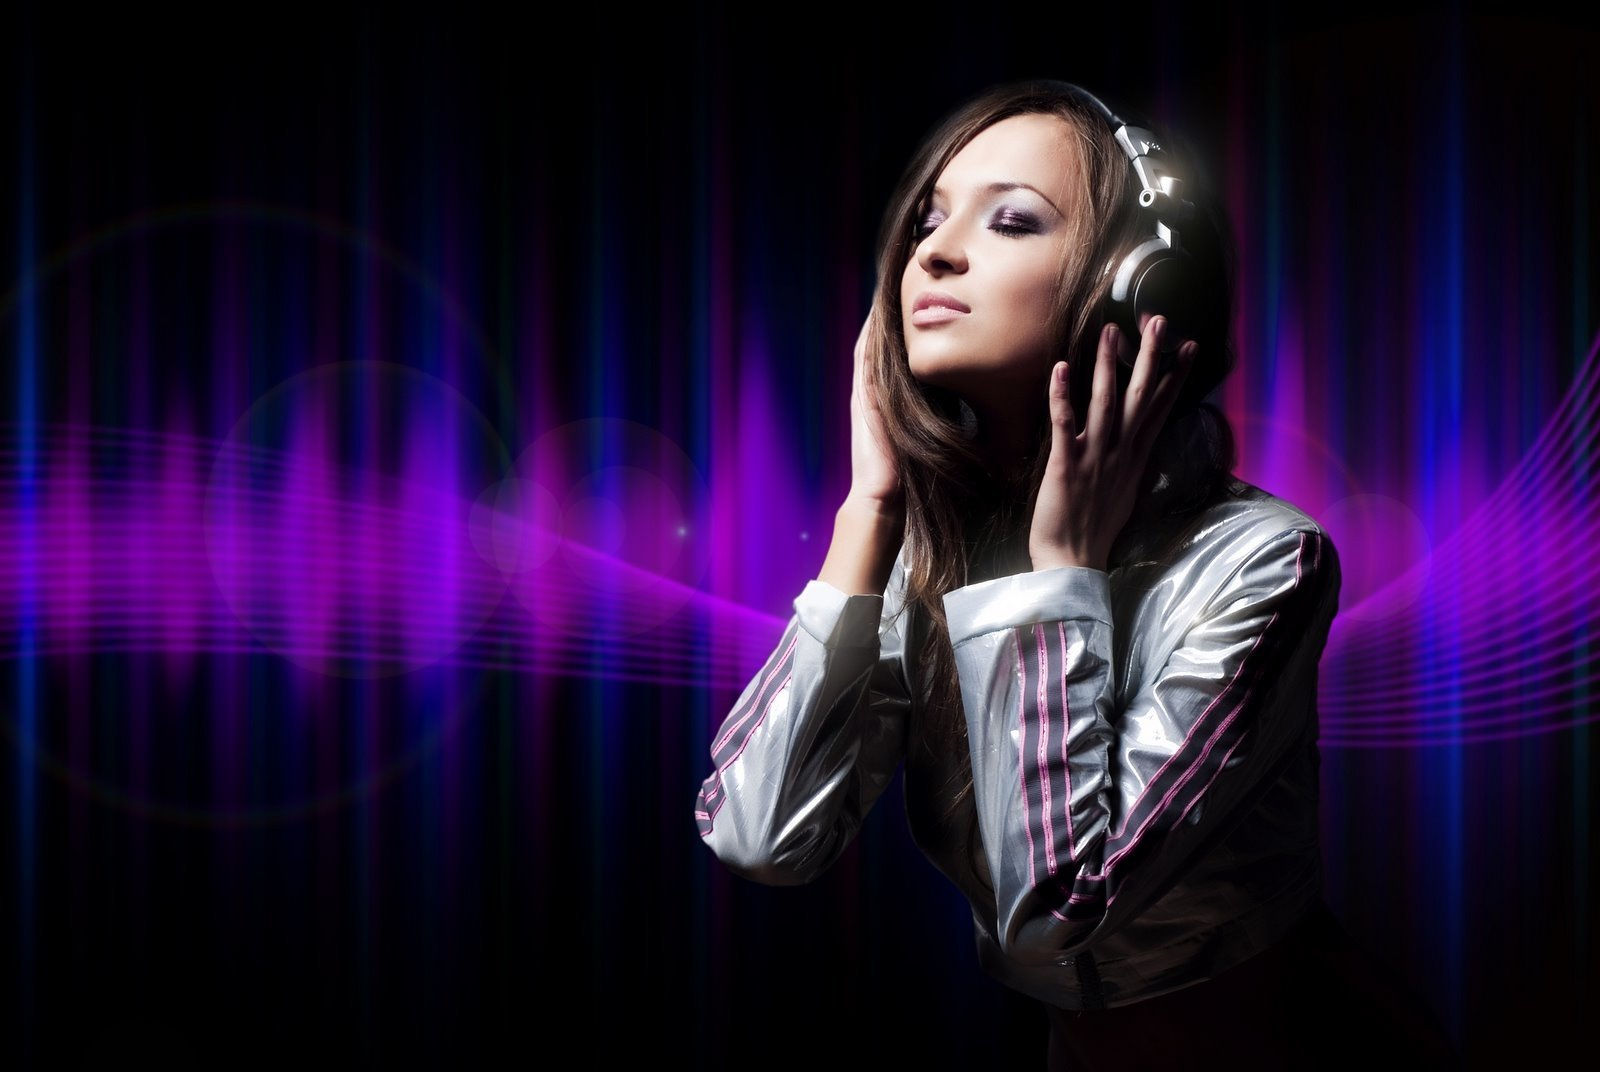 Wallpapers ID:95001